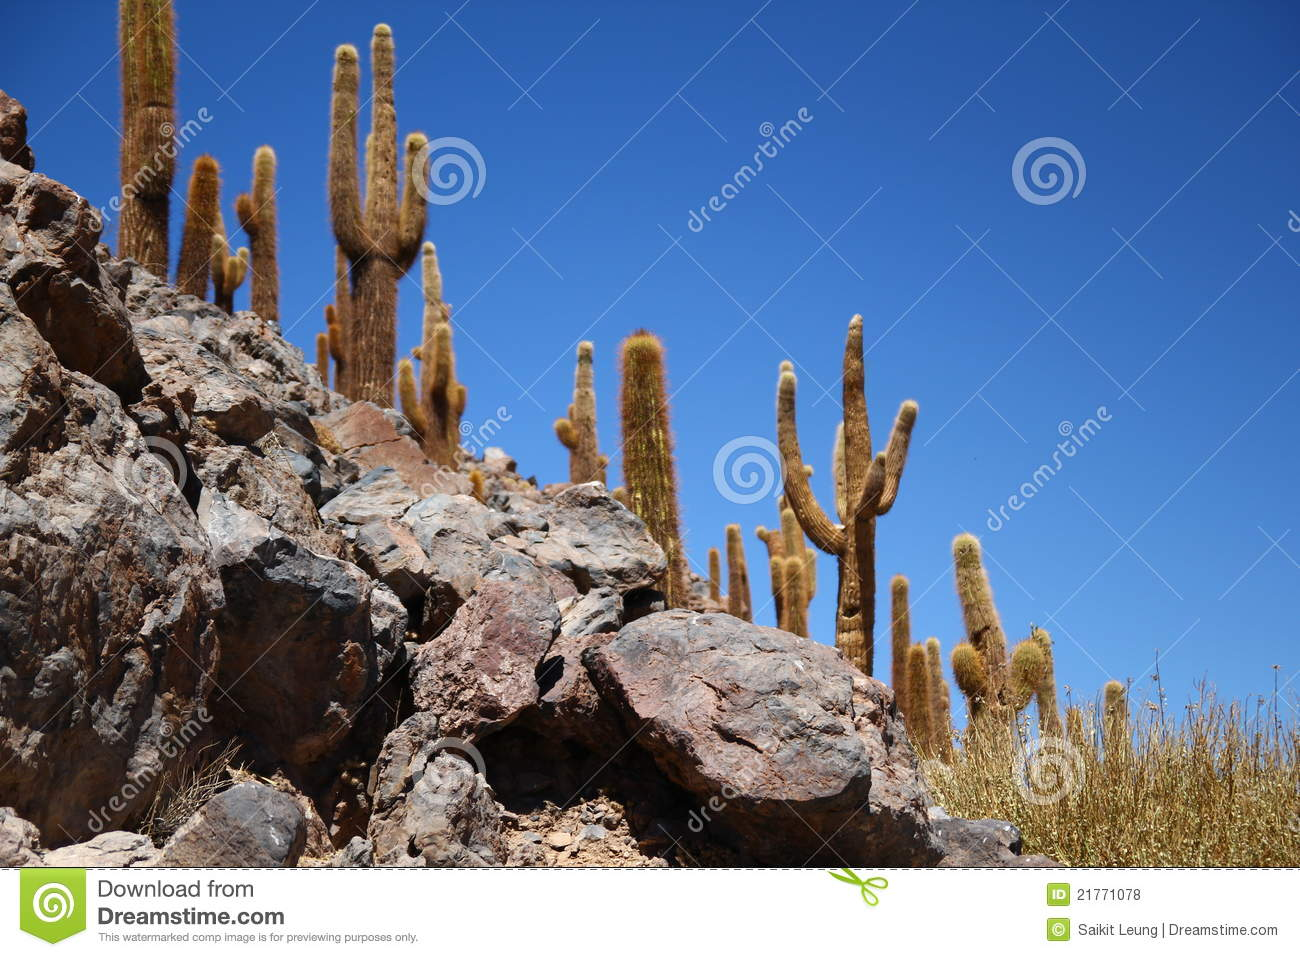 Desert Cactus Royalty Free Stock Photos - Image: 21771078 HD Wide Wallpaper for Widescreen